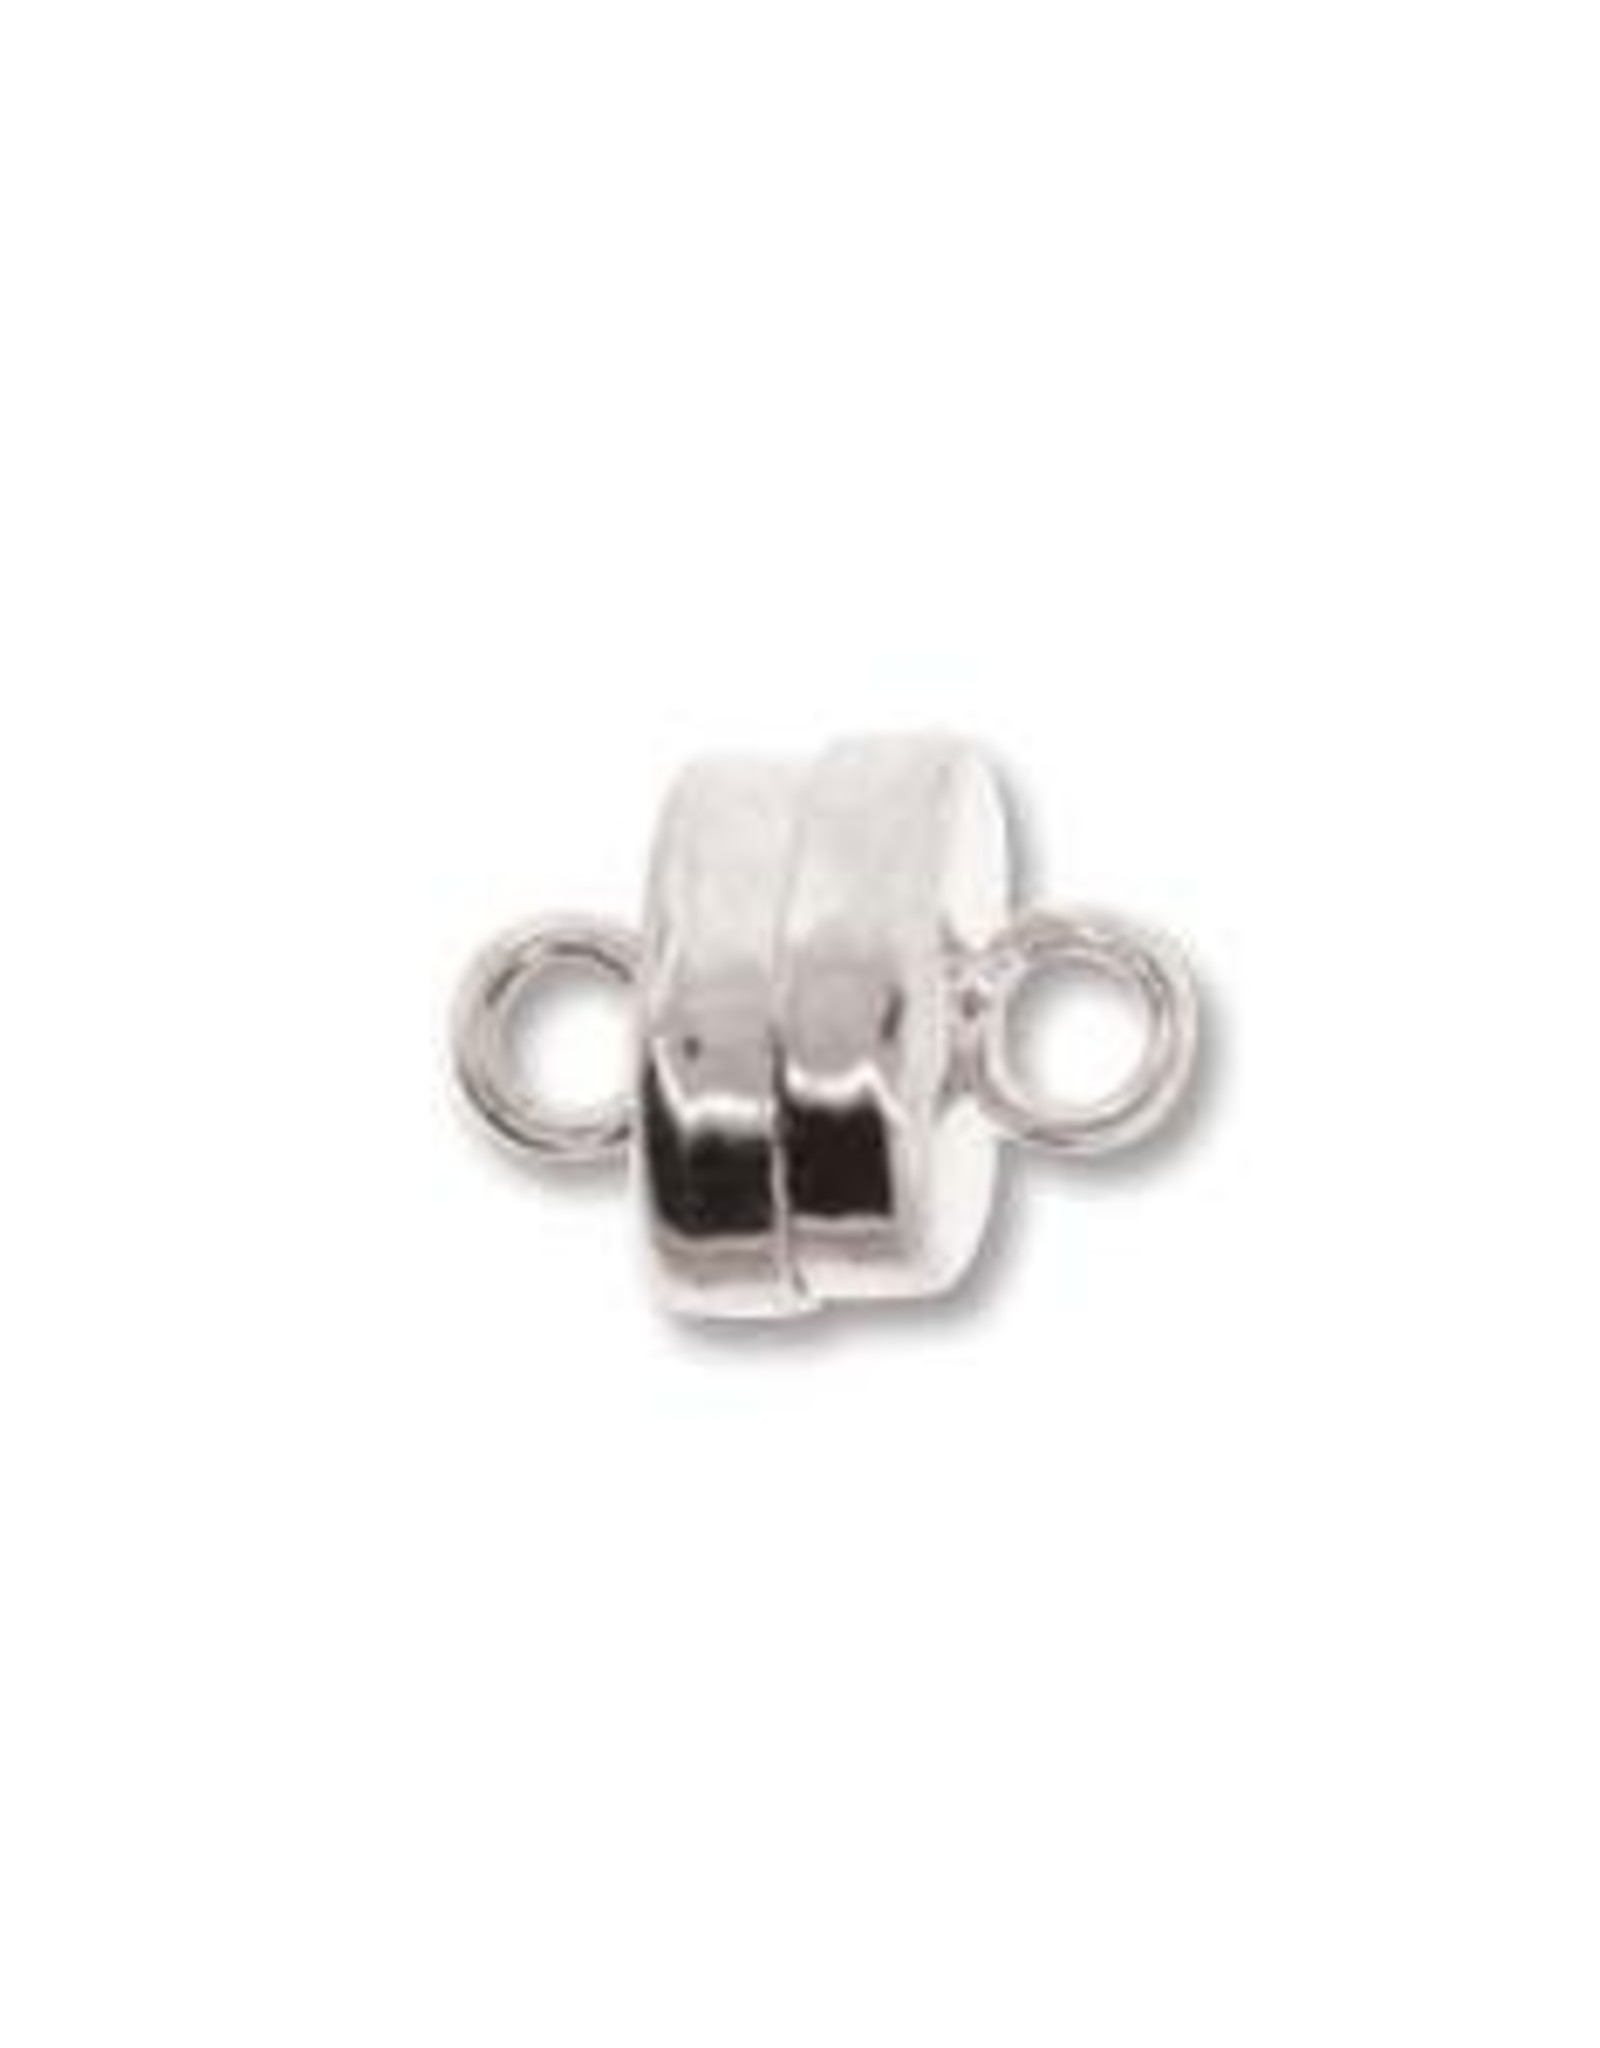 7mm Magnetic Clasp Silver Plate Qty 3